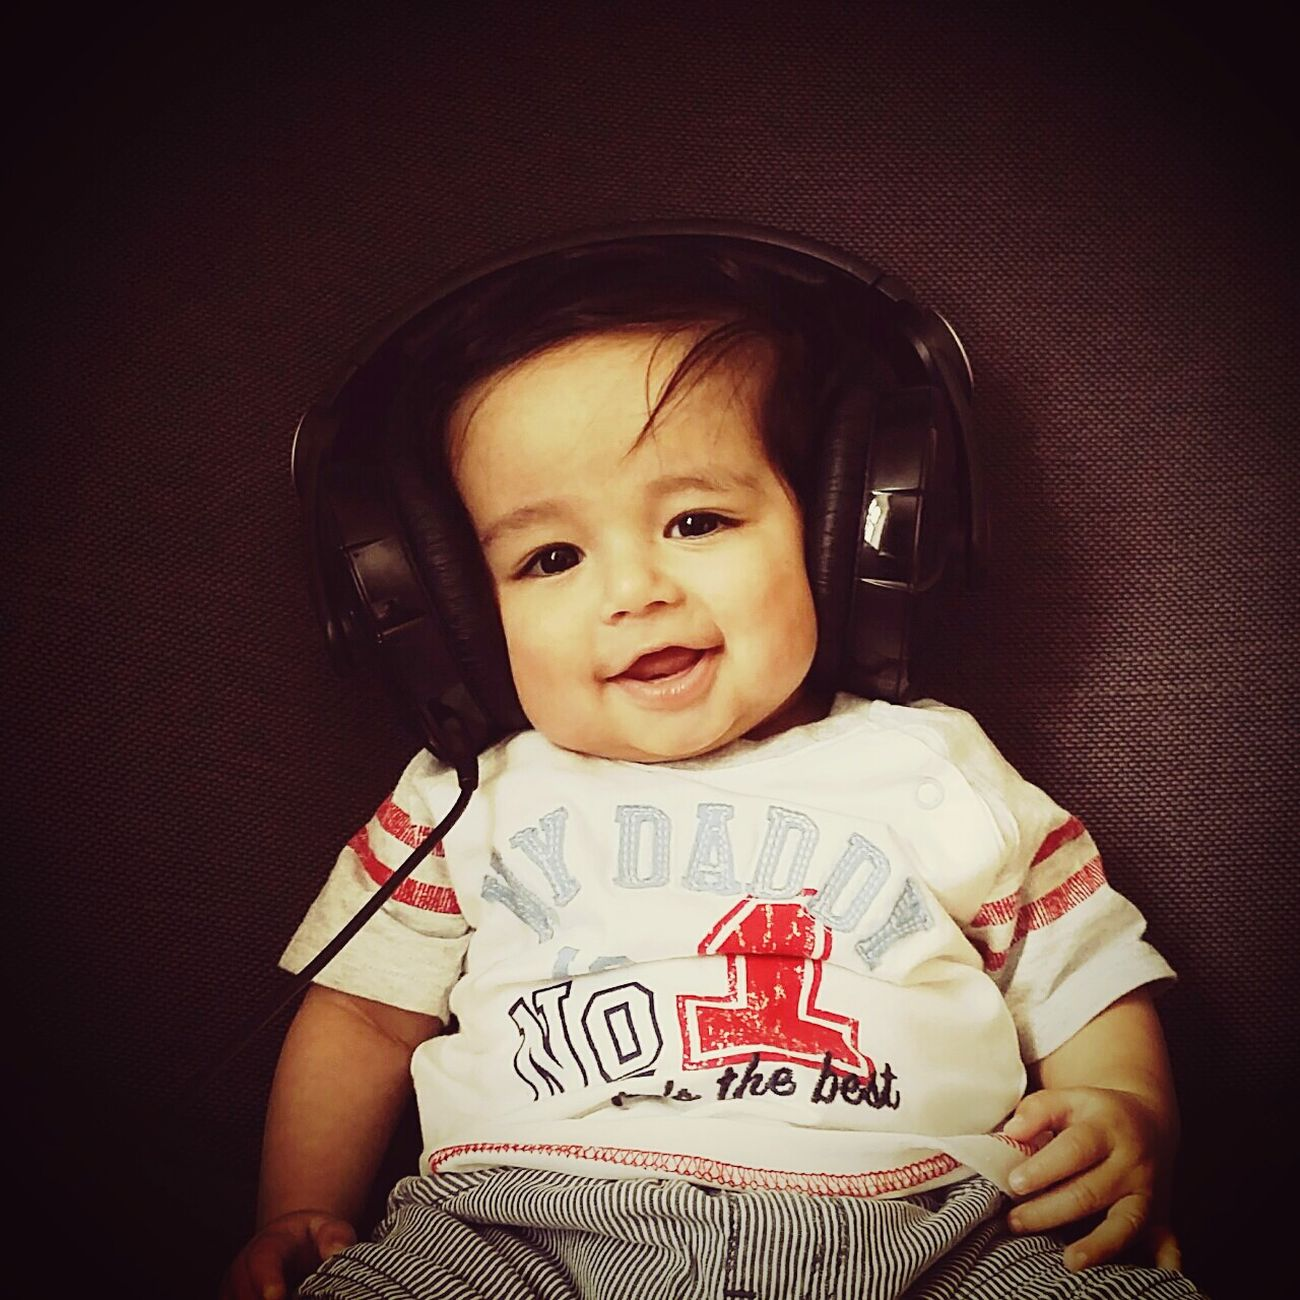 Love Music♥ Love Life ❤ Love U ❤ Baby Dj! My Babyboy❤ Love My Family ❤ Colour Of Life Cutest Boy Ever  Photogentic  Takung Photos Daddysboy Love To Smile!:) Poser ❤ Cuteness Overload!! Dj Gear